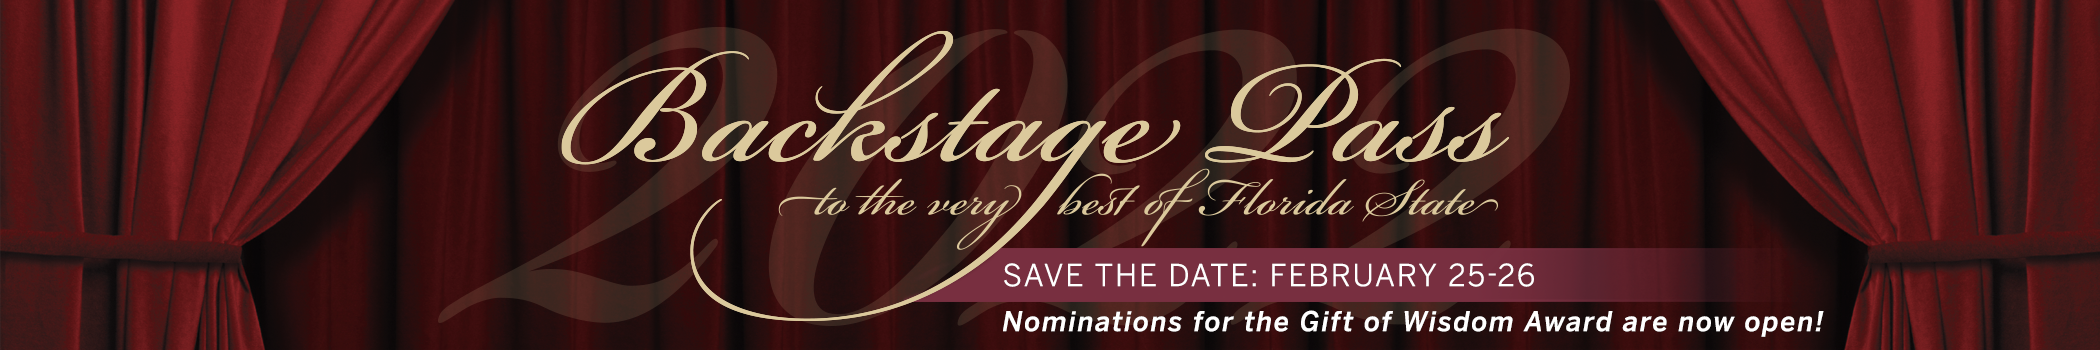 BSP logo on red curtain with text saying to save the date and nominations for gift of wisdom are now open.